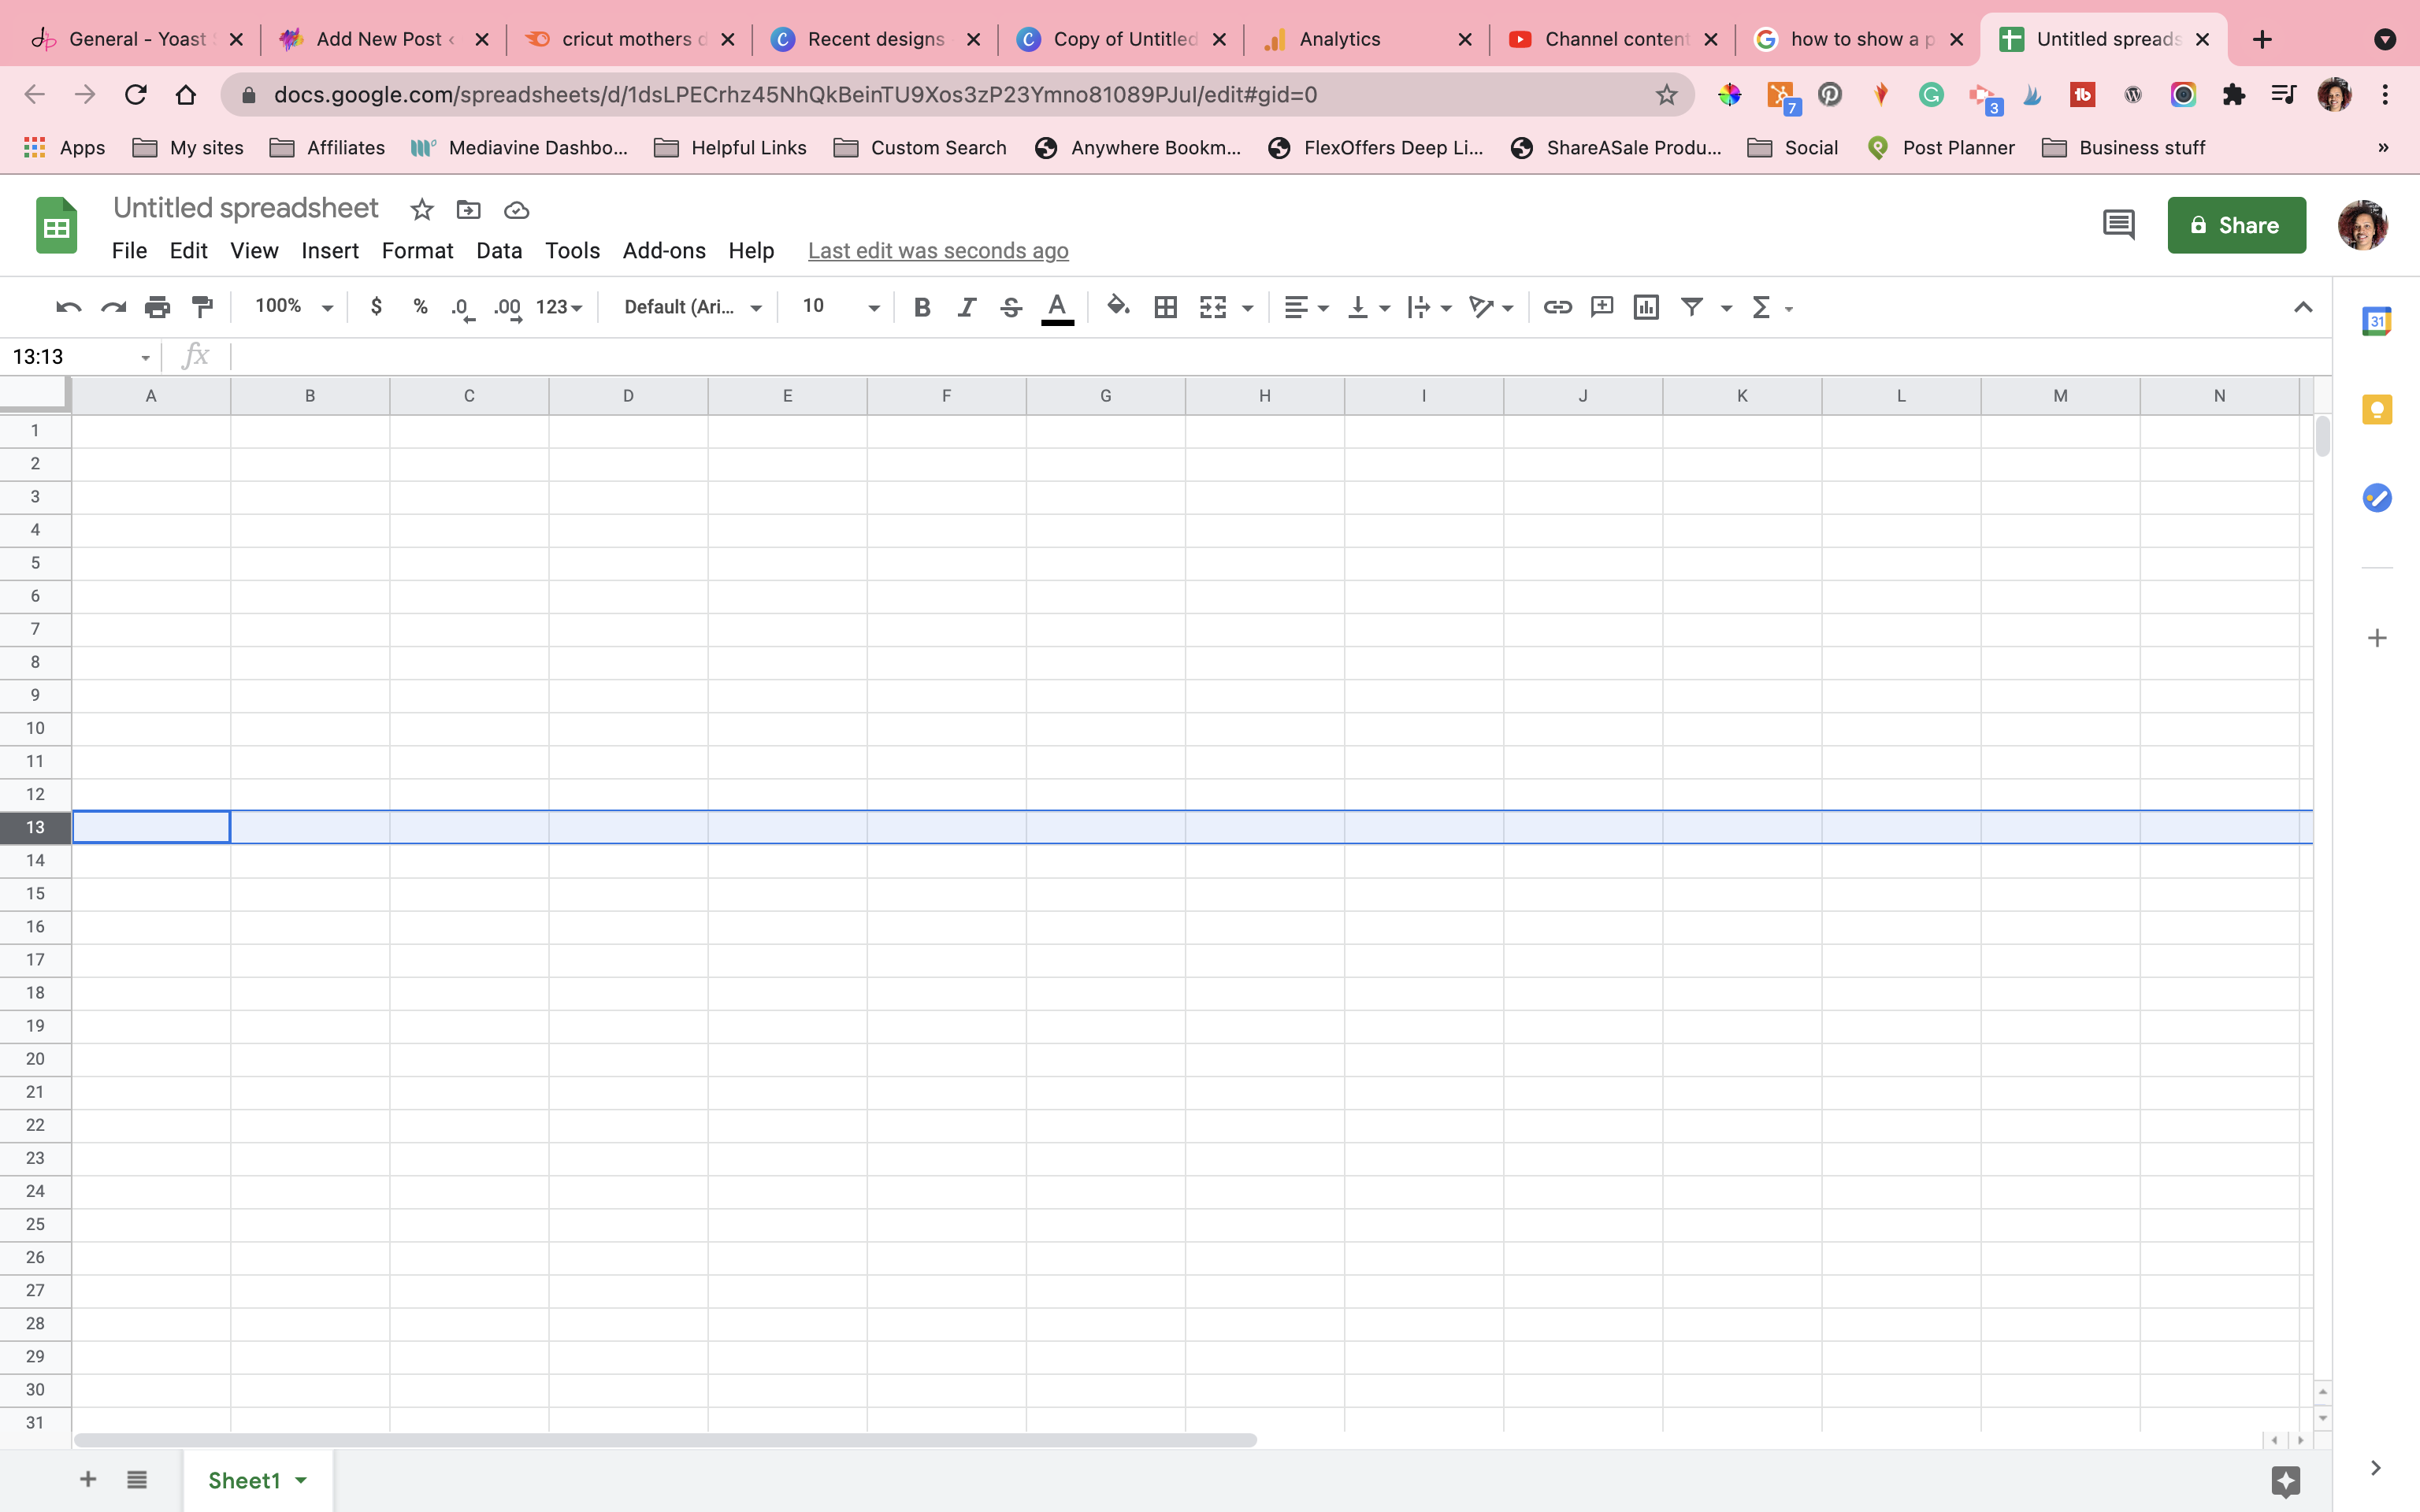 google sheet with row 13 selected